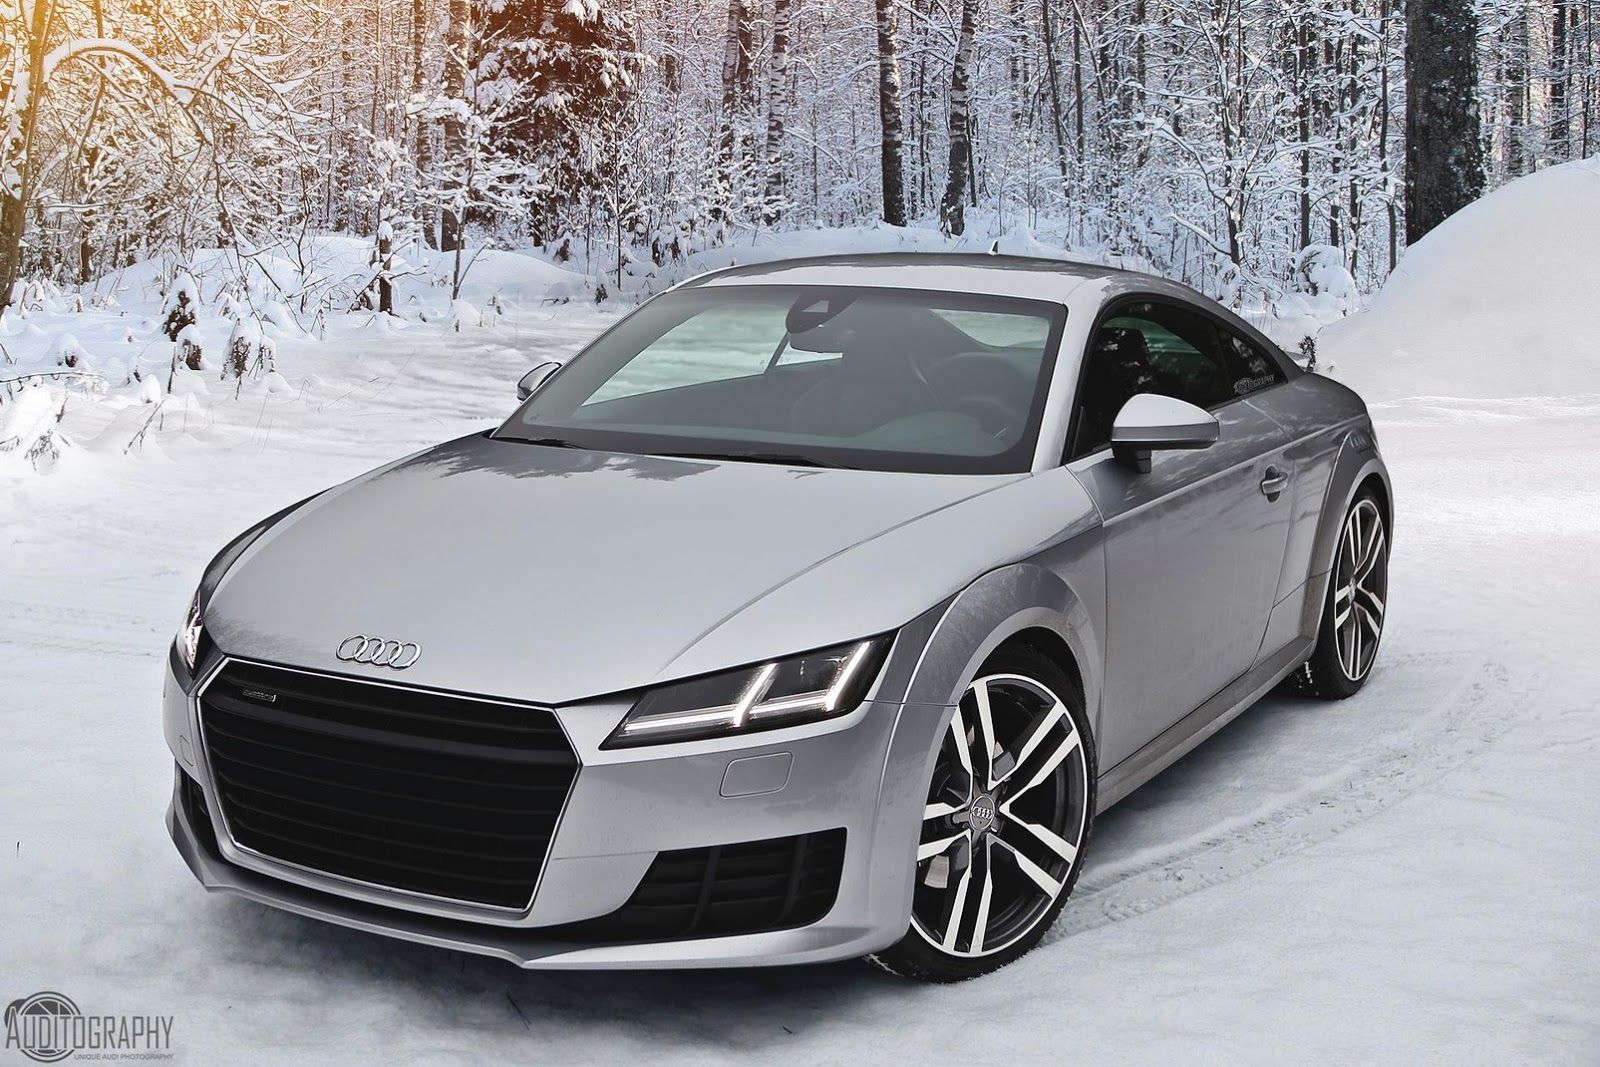 2015 audi tt is the perfect snow angel | audi | pinterest | snow